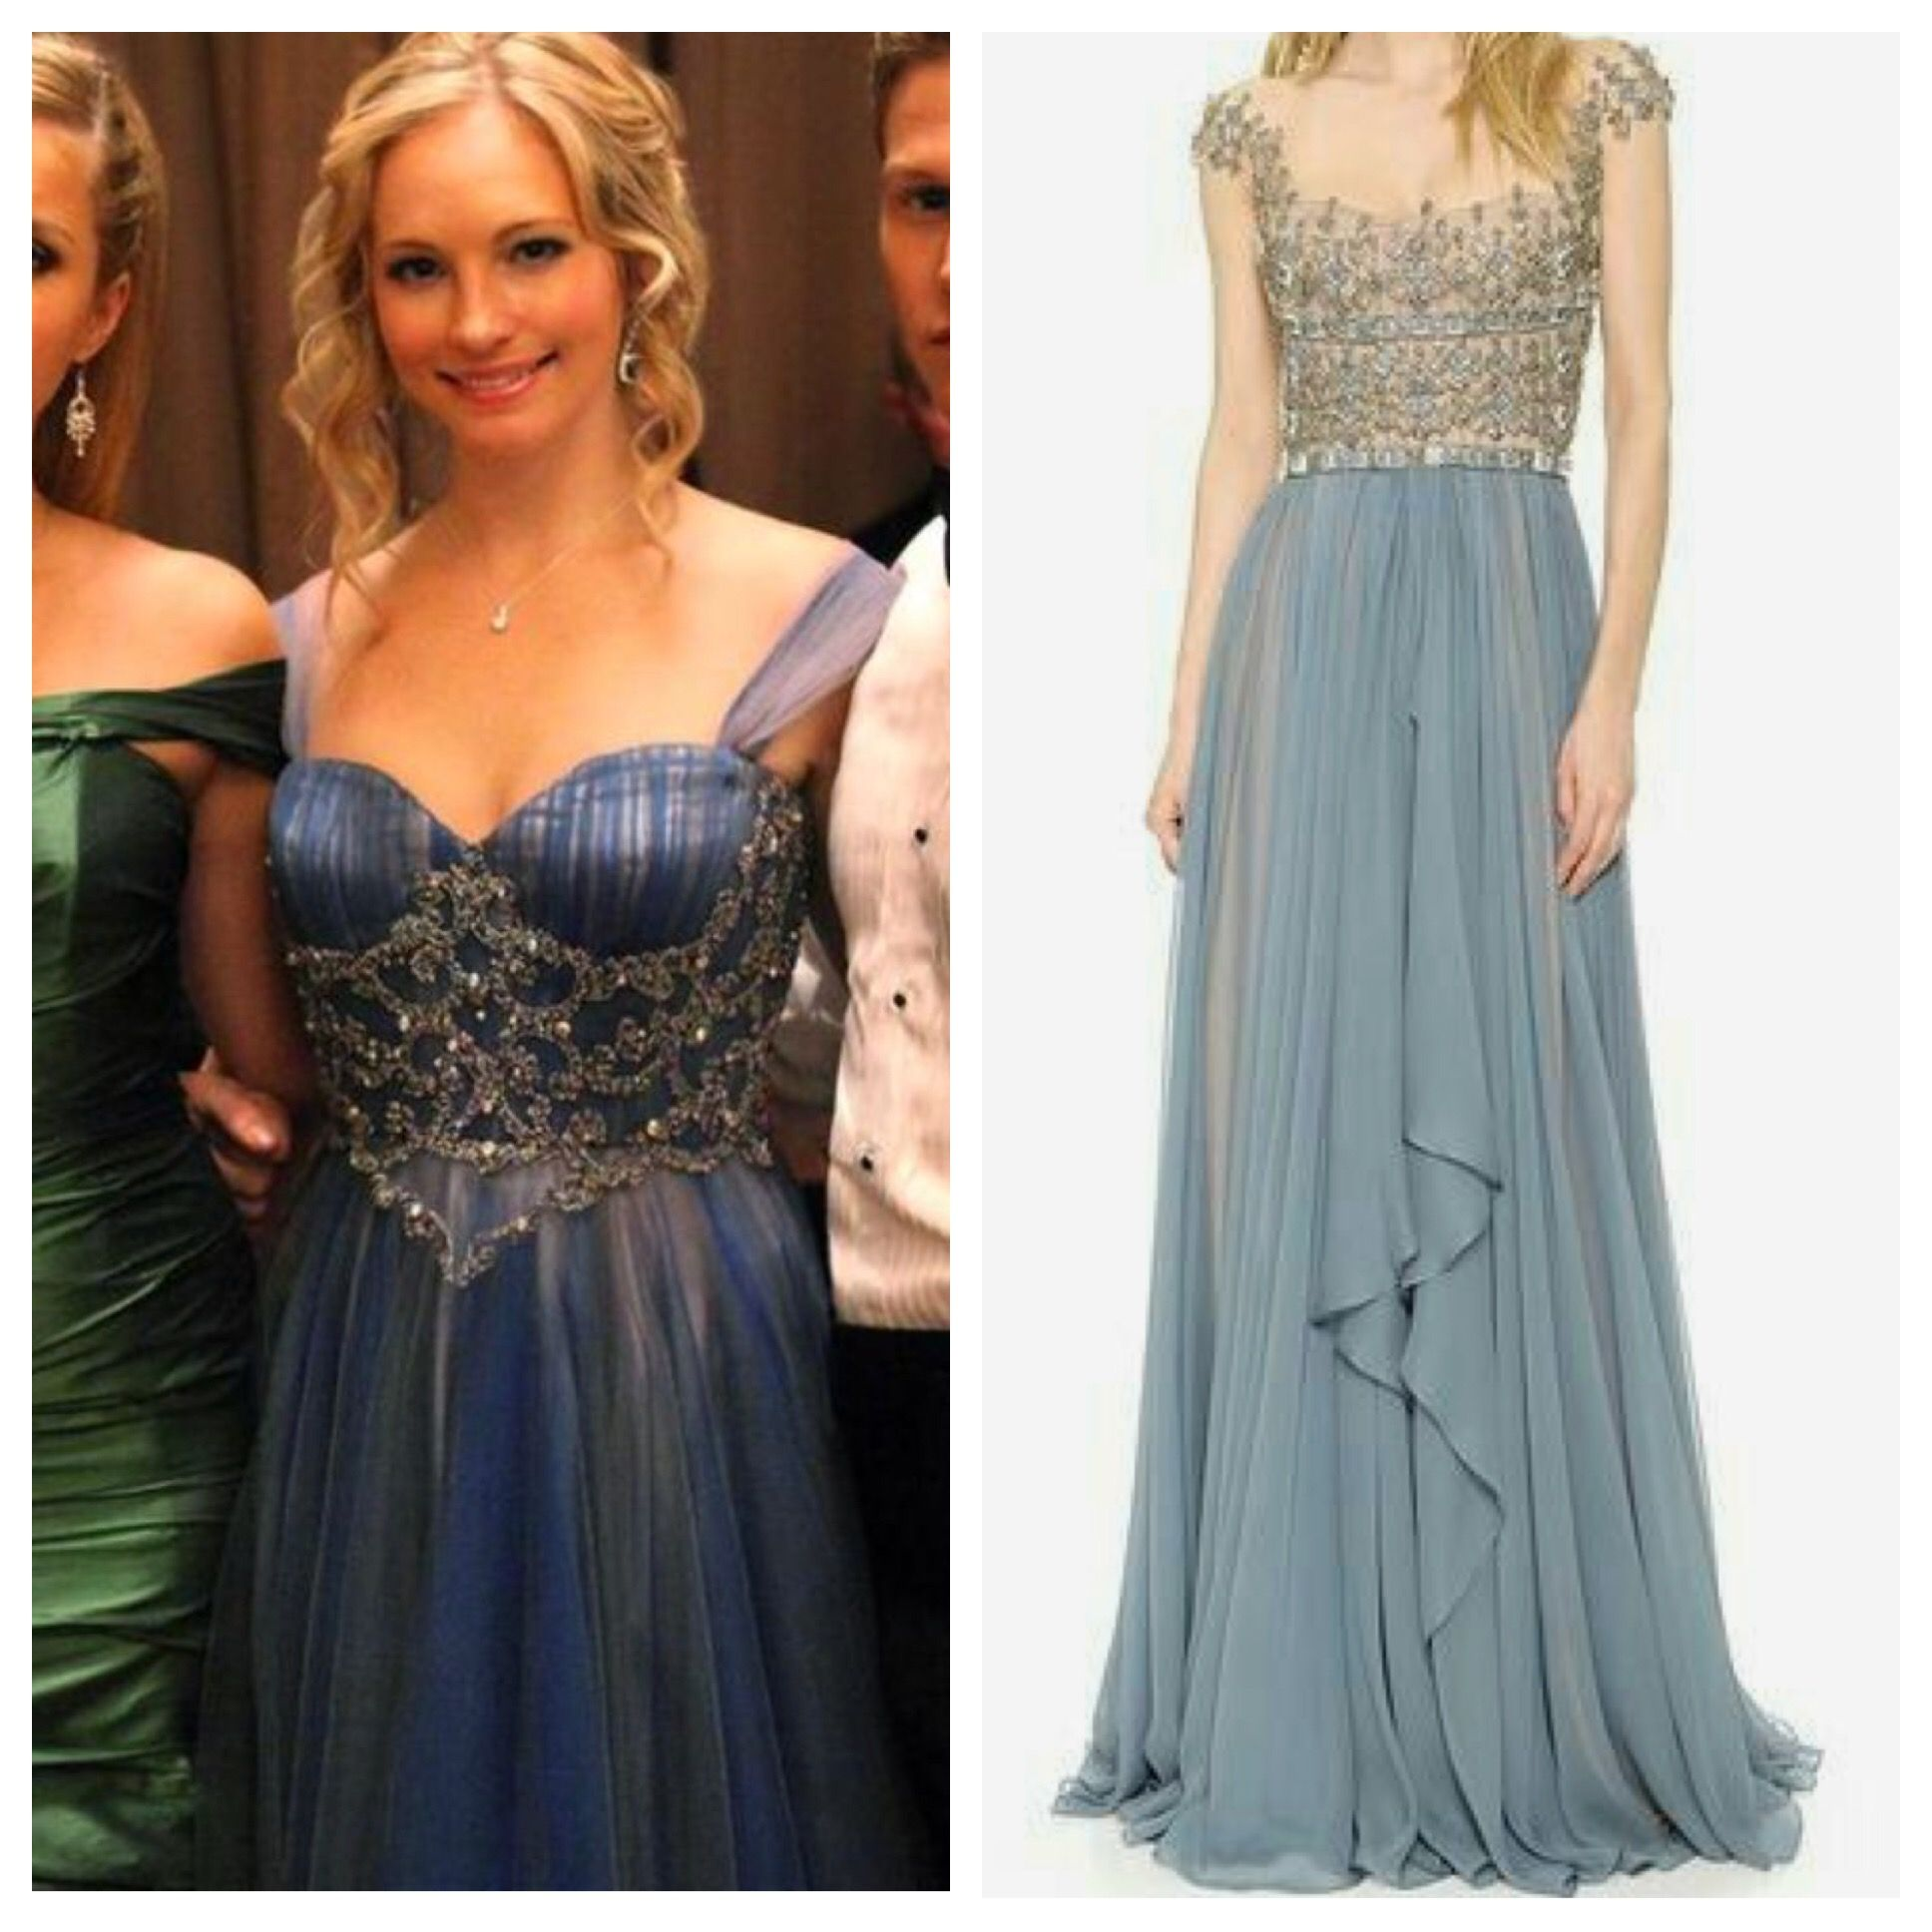 The Originals Wardrobe Design Left Caroline S Gown At The Mikaelson S Ball On Tvd 3x14 Color Variation Is Nice Bridesmaid Dresses Dresses Formal Dresses [ 1936 x 1936 Pixel ]